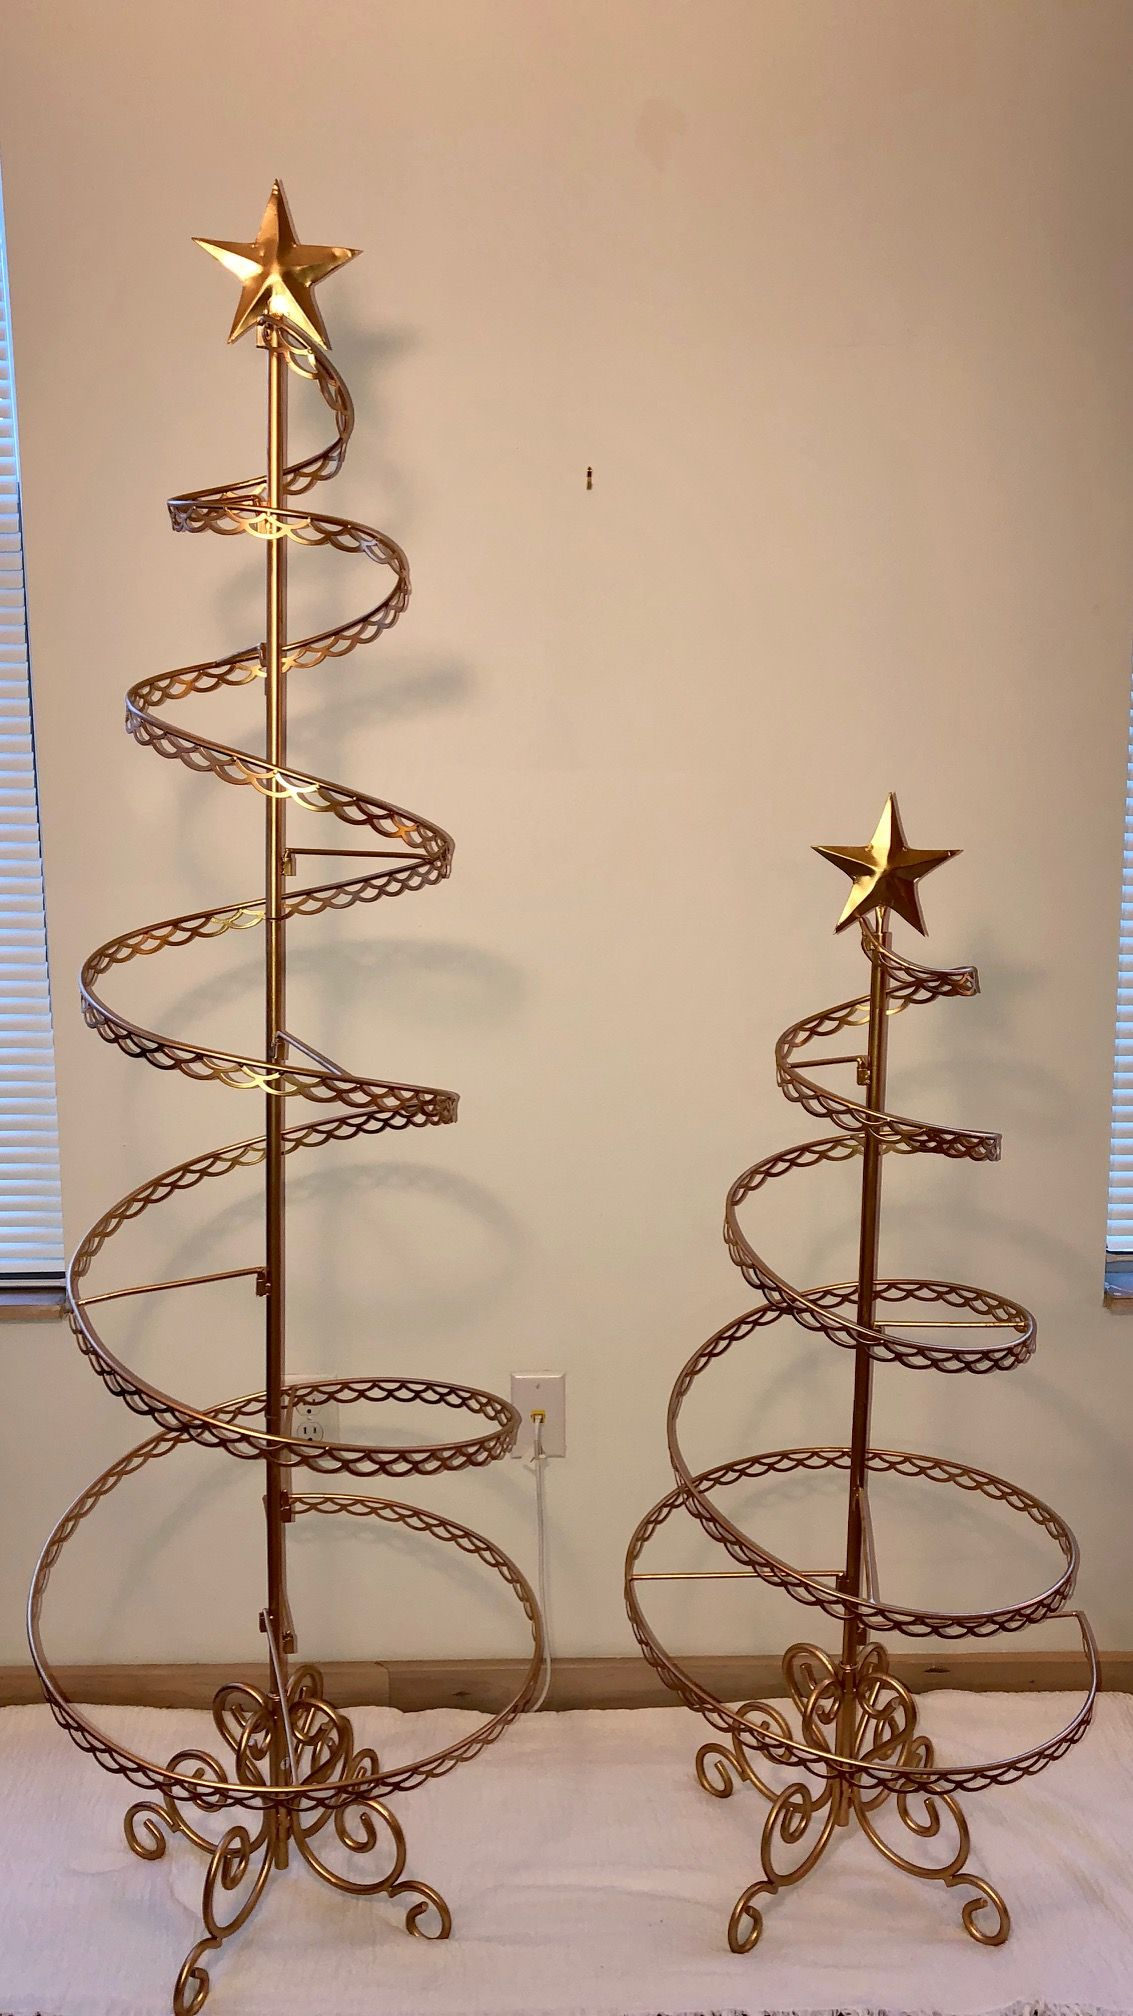 Ornament Trees Spiral Wire Ornament Tree 6 Foot Ornament Display Trees Ornament Tree Display Ornament Display Spiral Christmas Tree